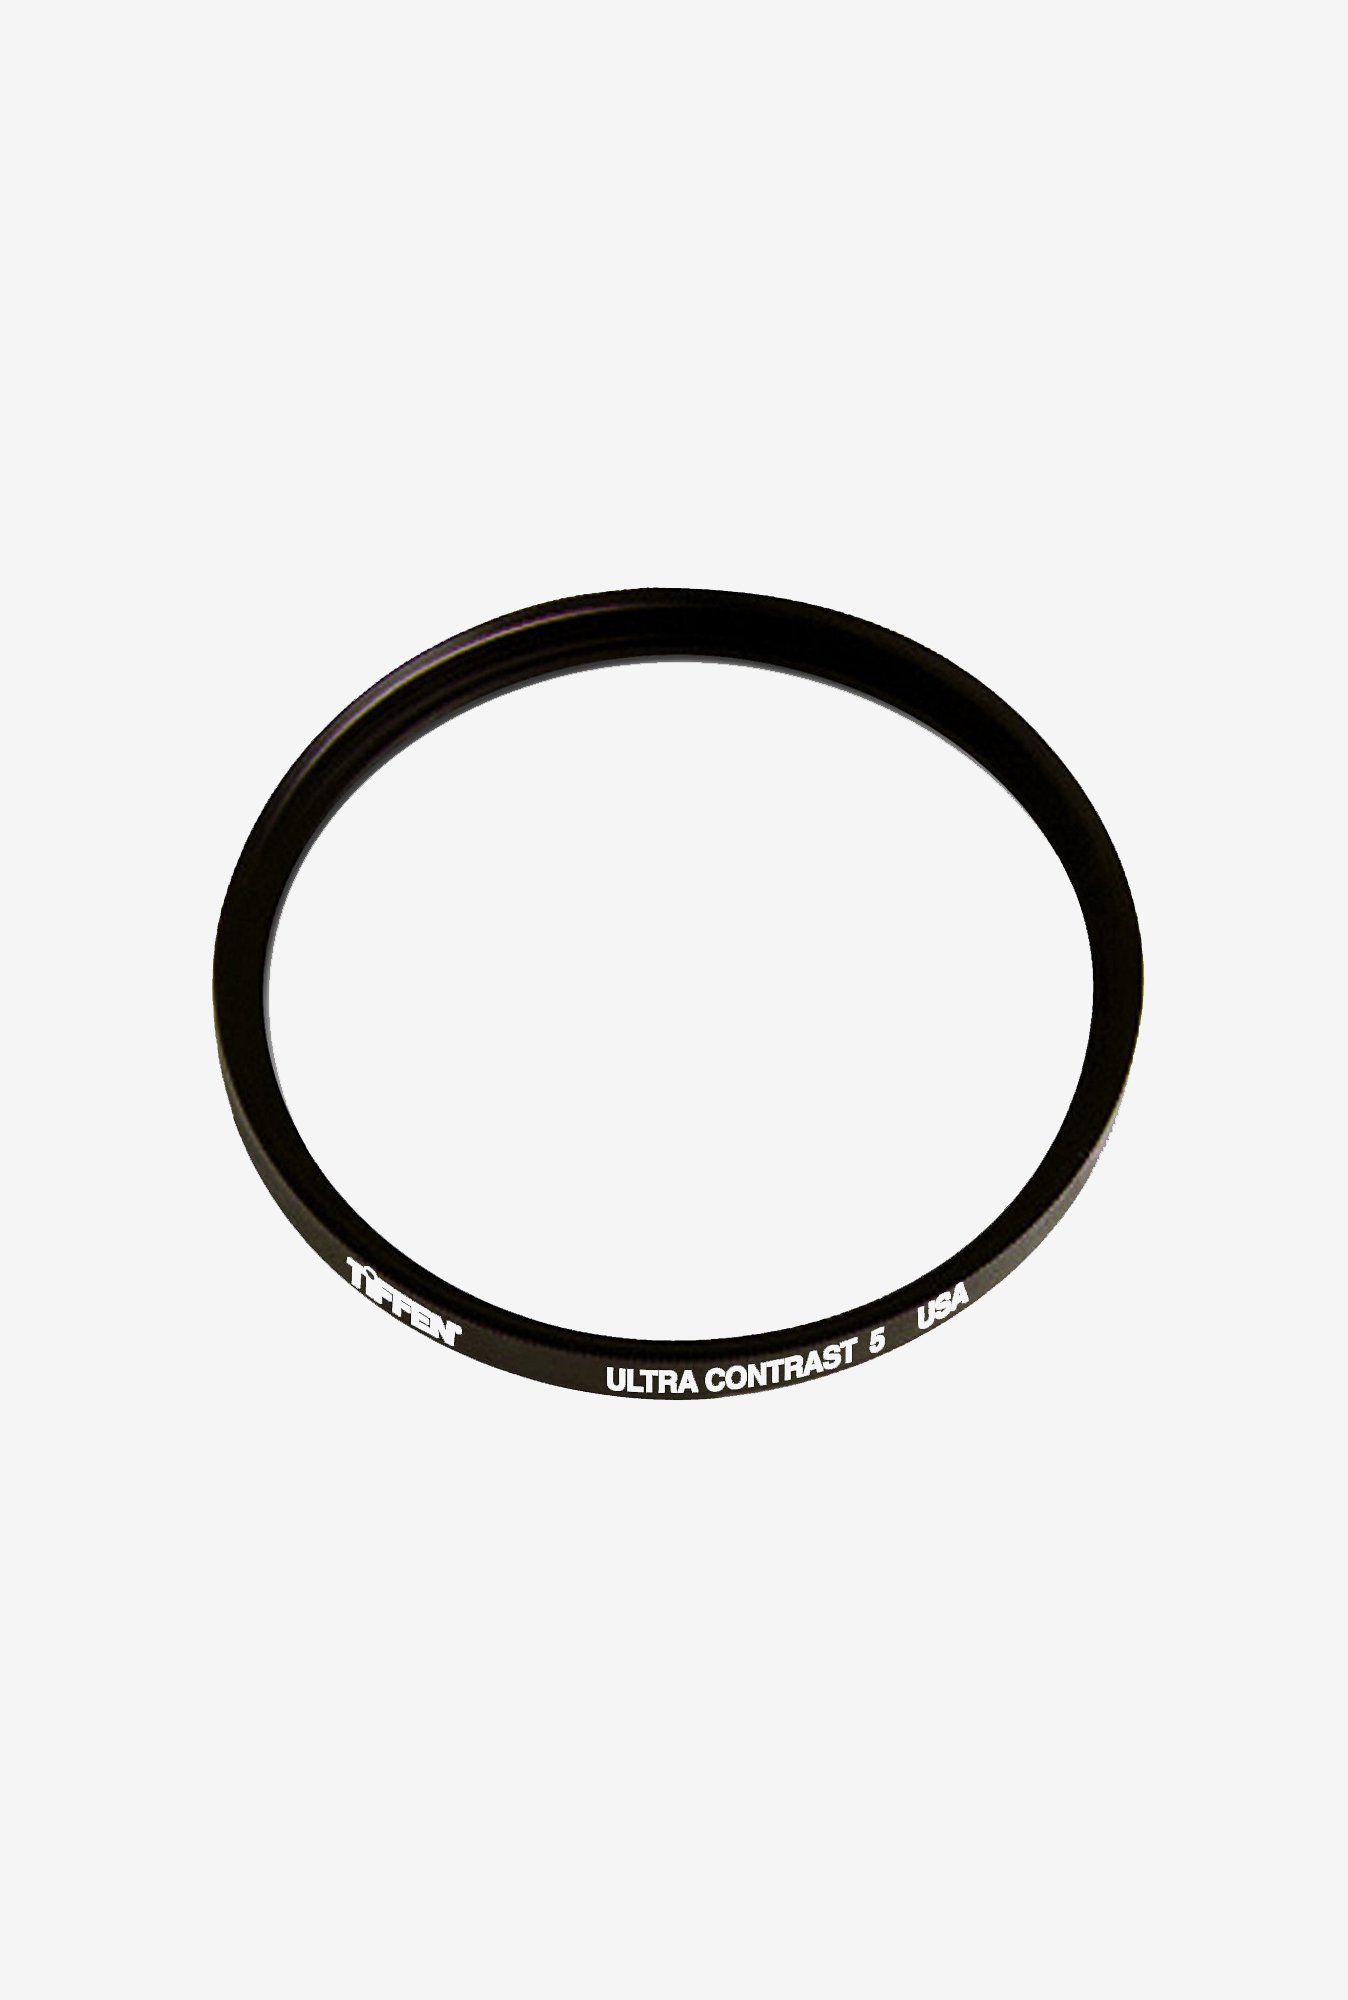 Tiffen 55UC5 55mm Ultra Contrast 5 Filter (Black)